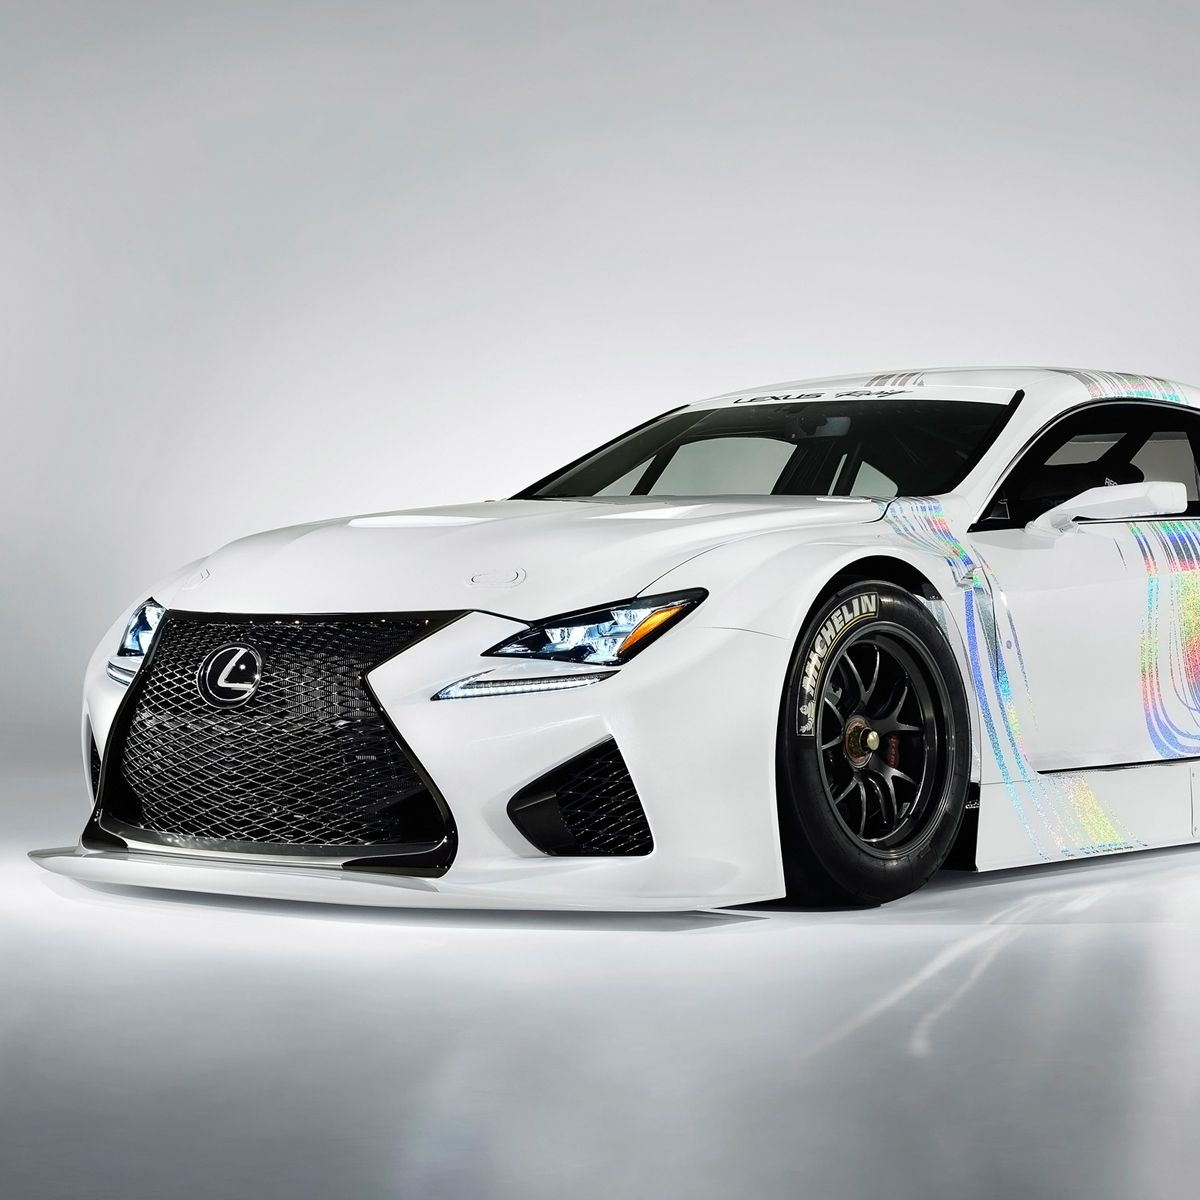 Best Lexus Sports Car: Lexus RCF GT3